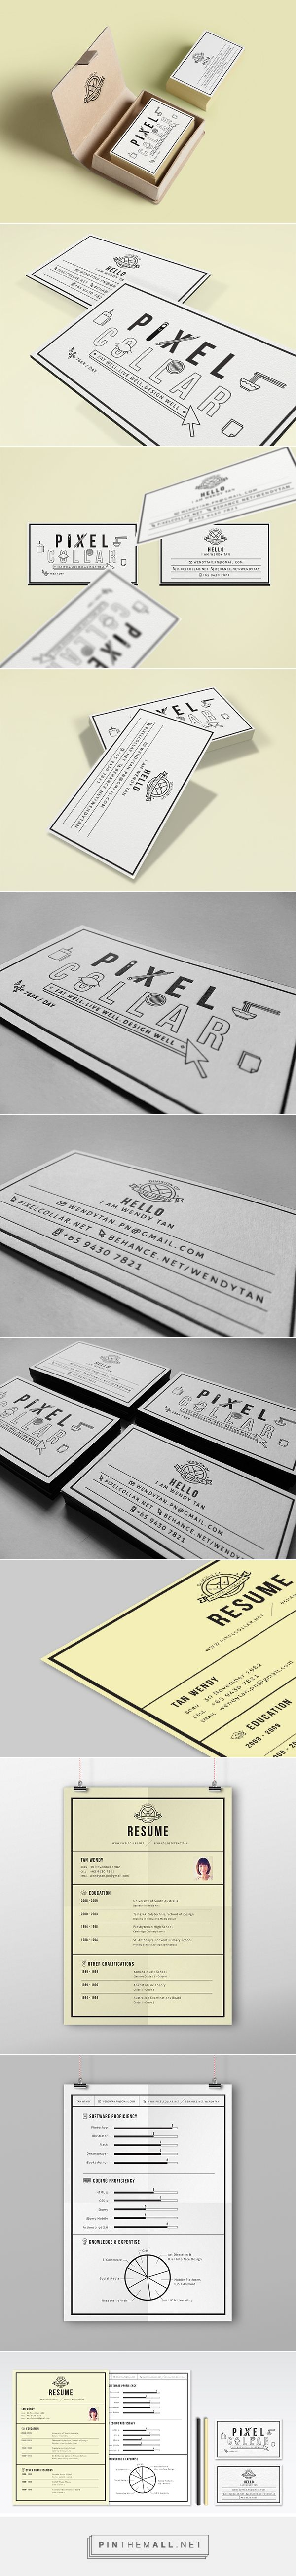 Pixel Collar - Namecard on Behance - created via https://pinthemall.net